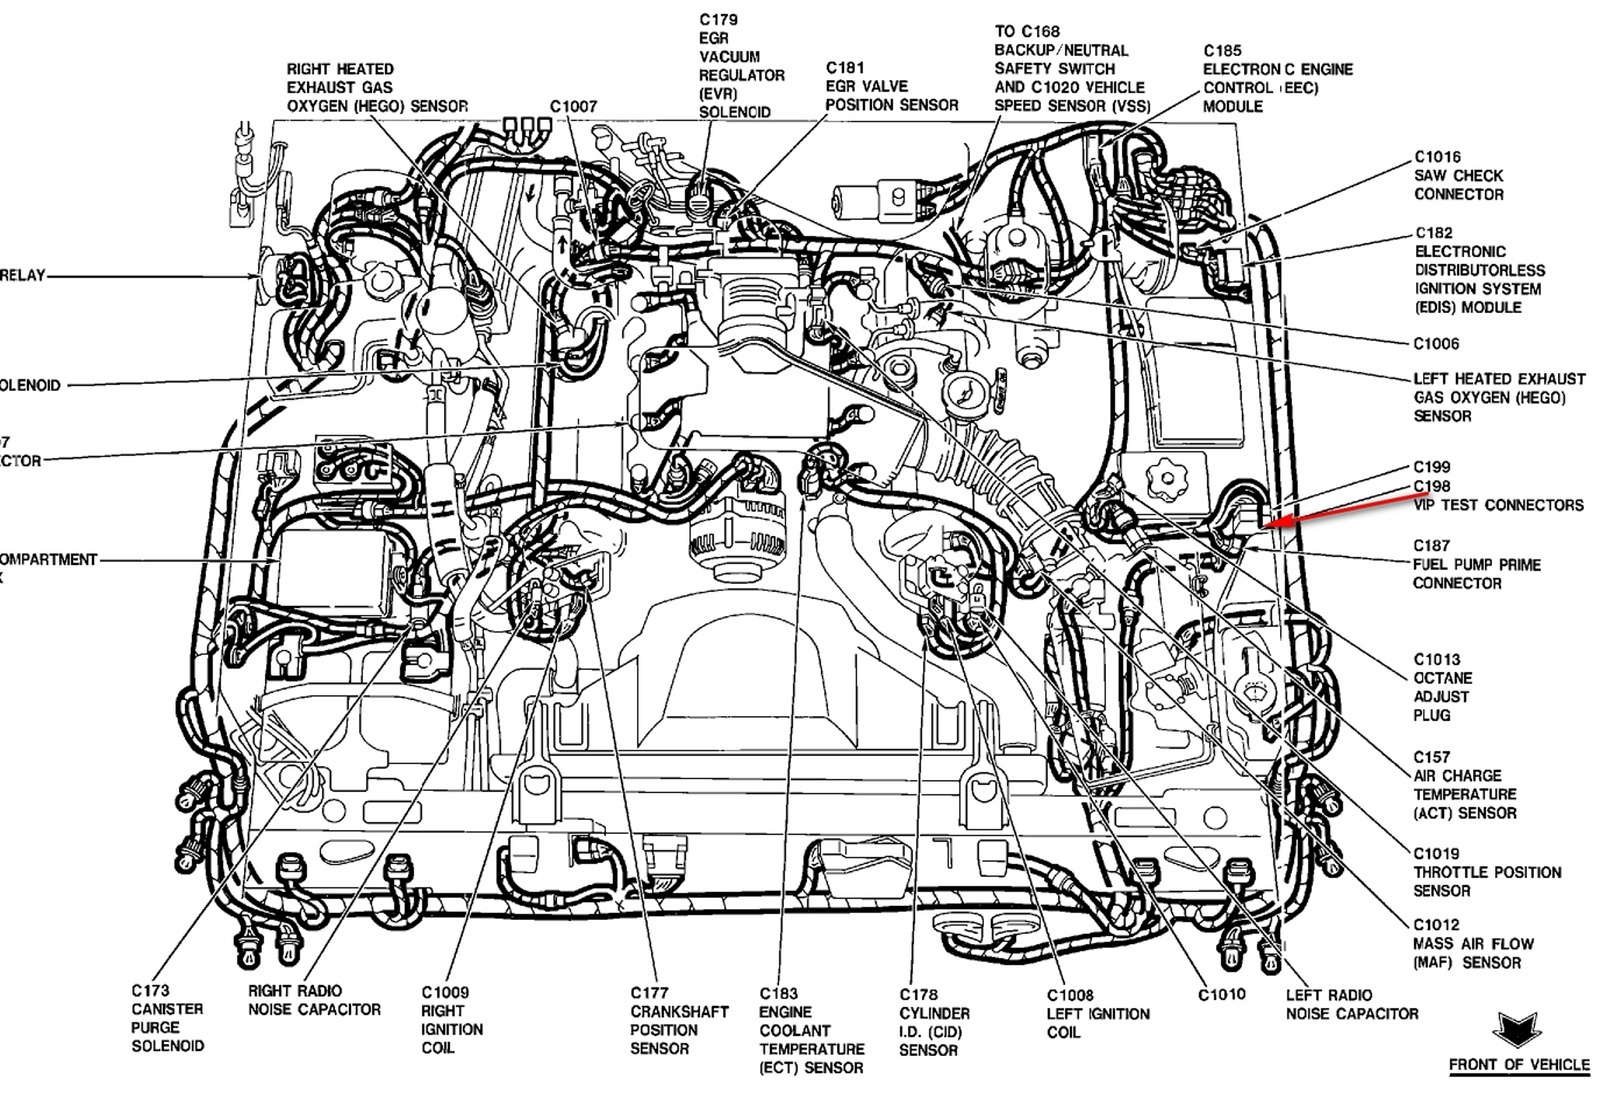 Discussion T16270 ds545905 on 1998 ford contour wiring harness problems